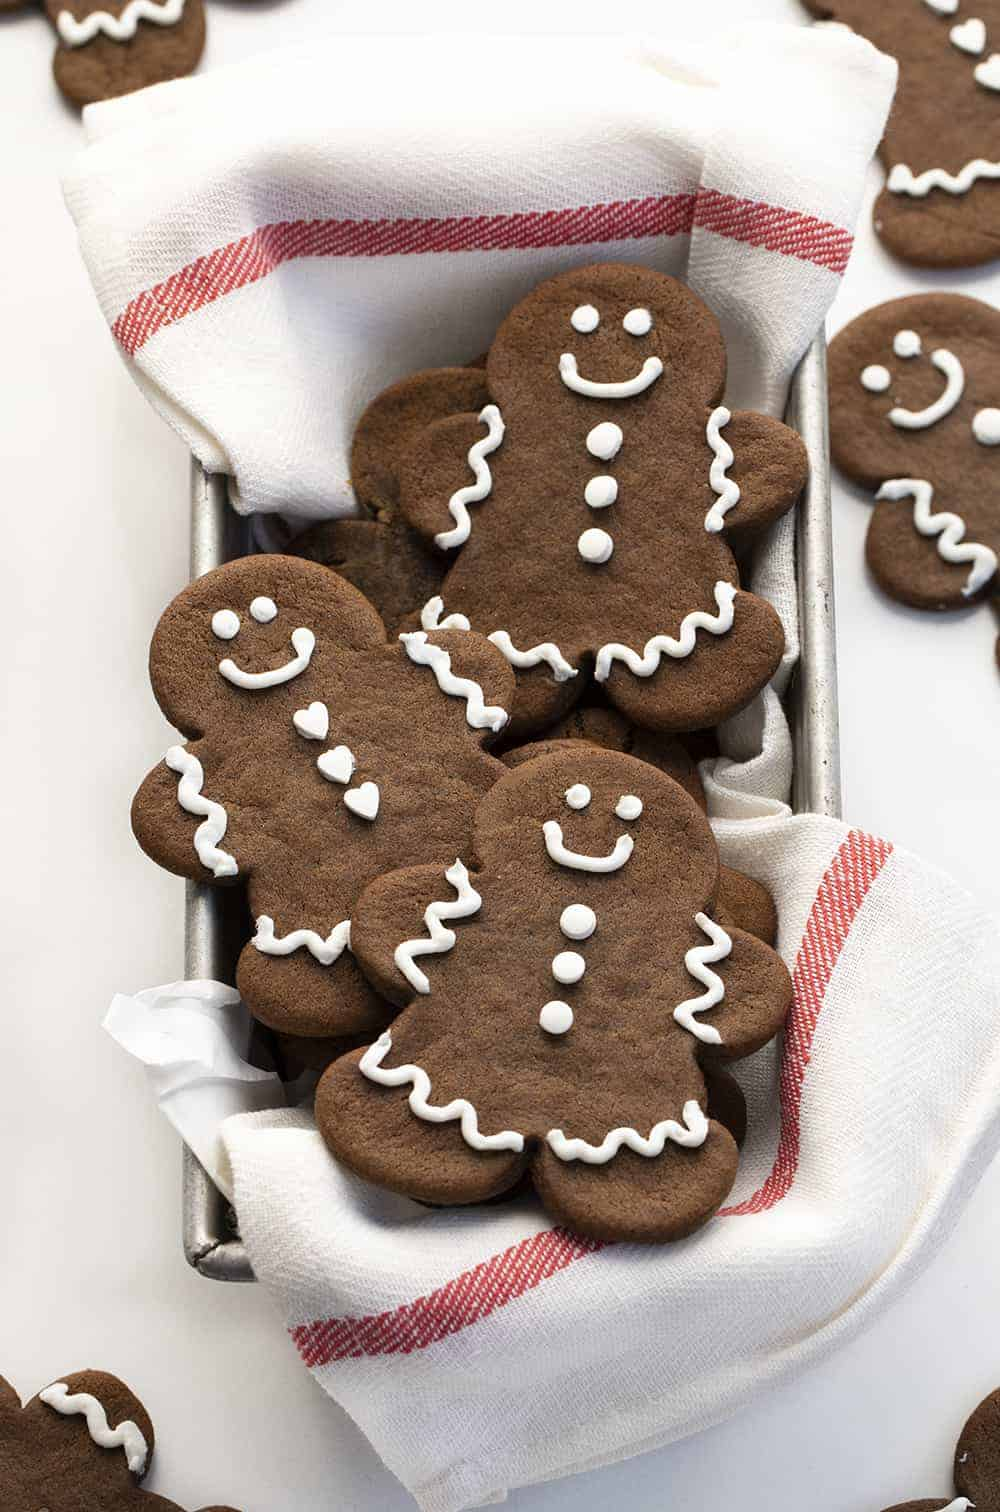 Basket of Gingerbread Man Cookies